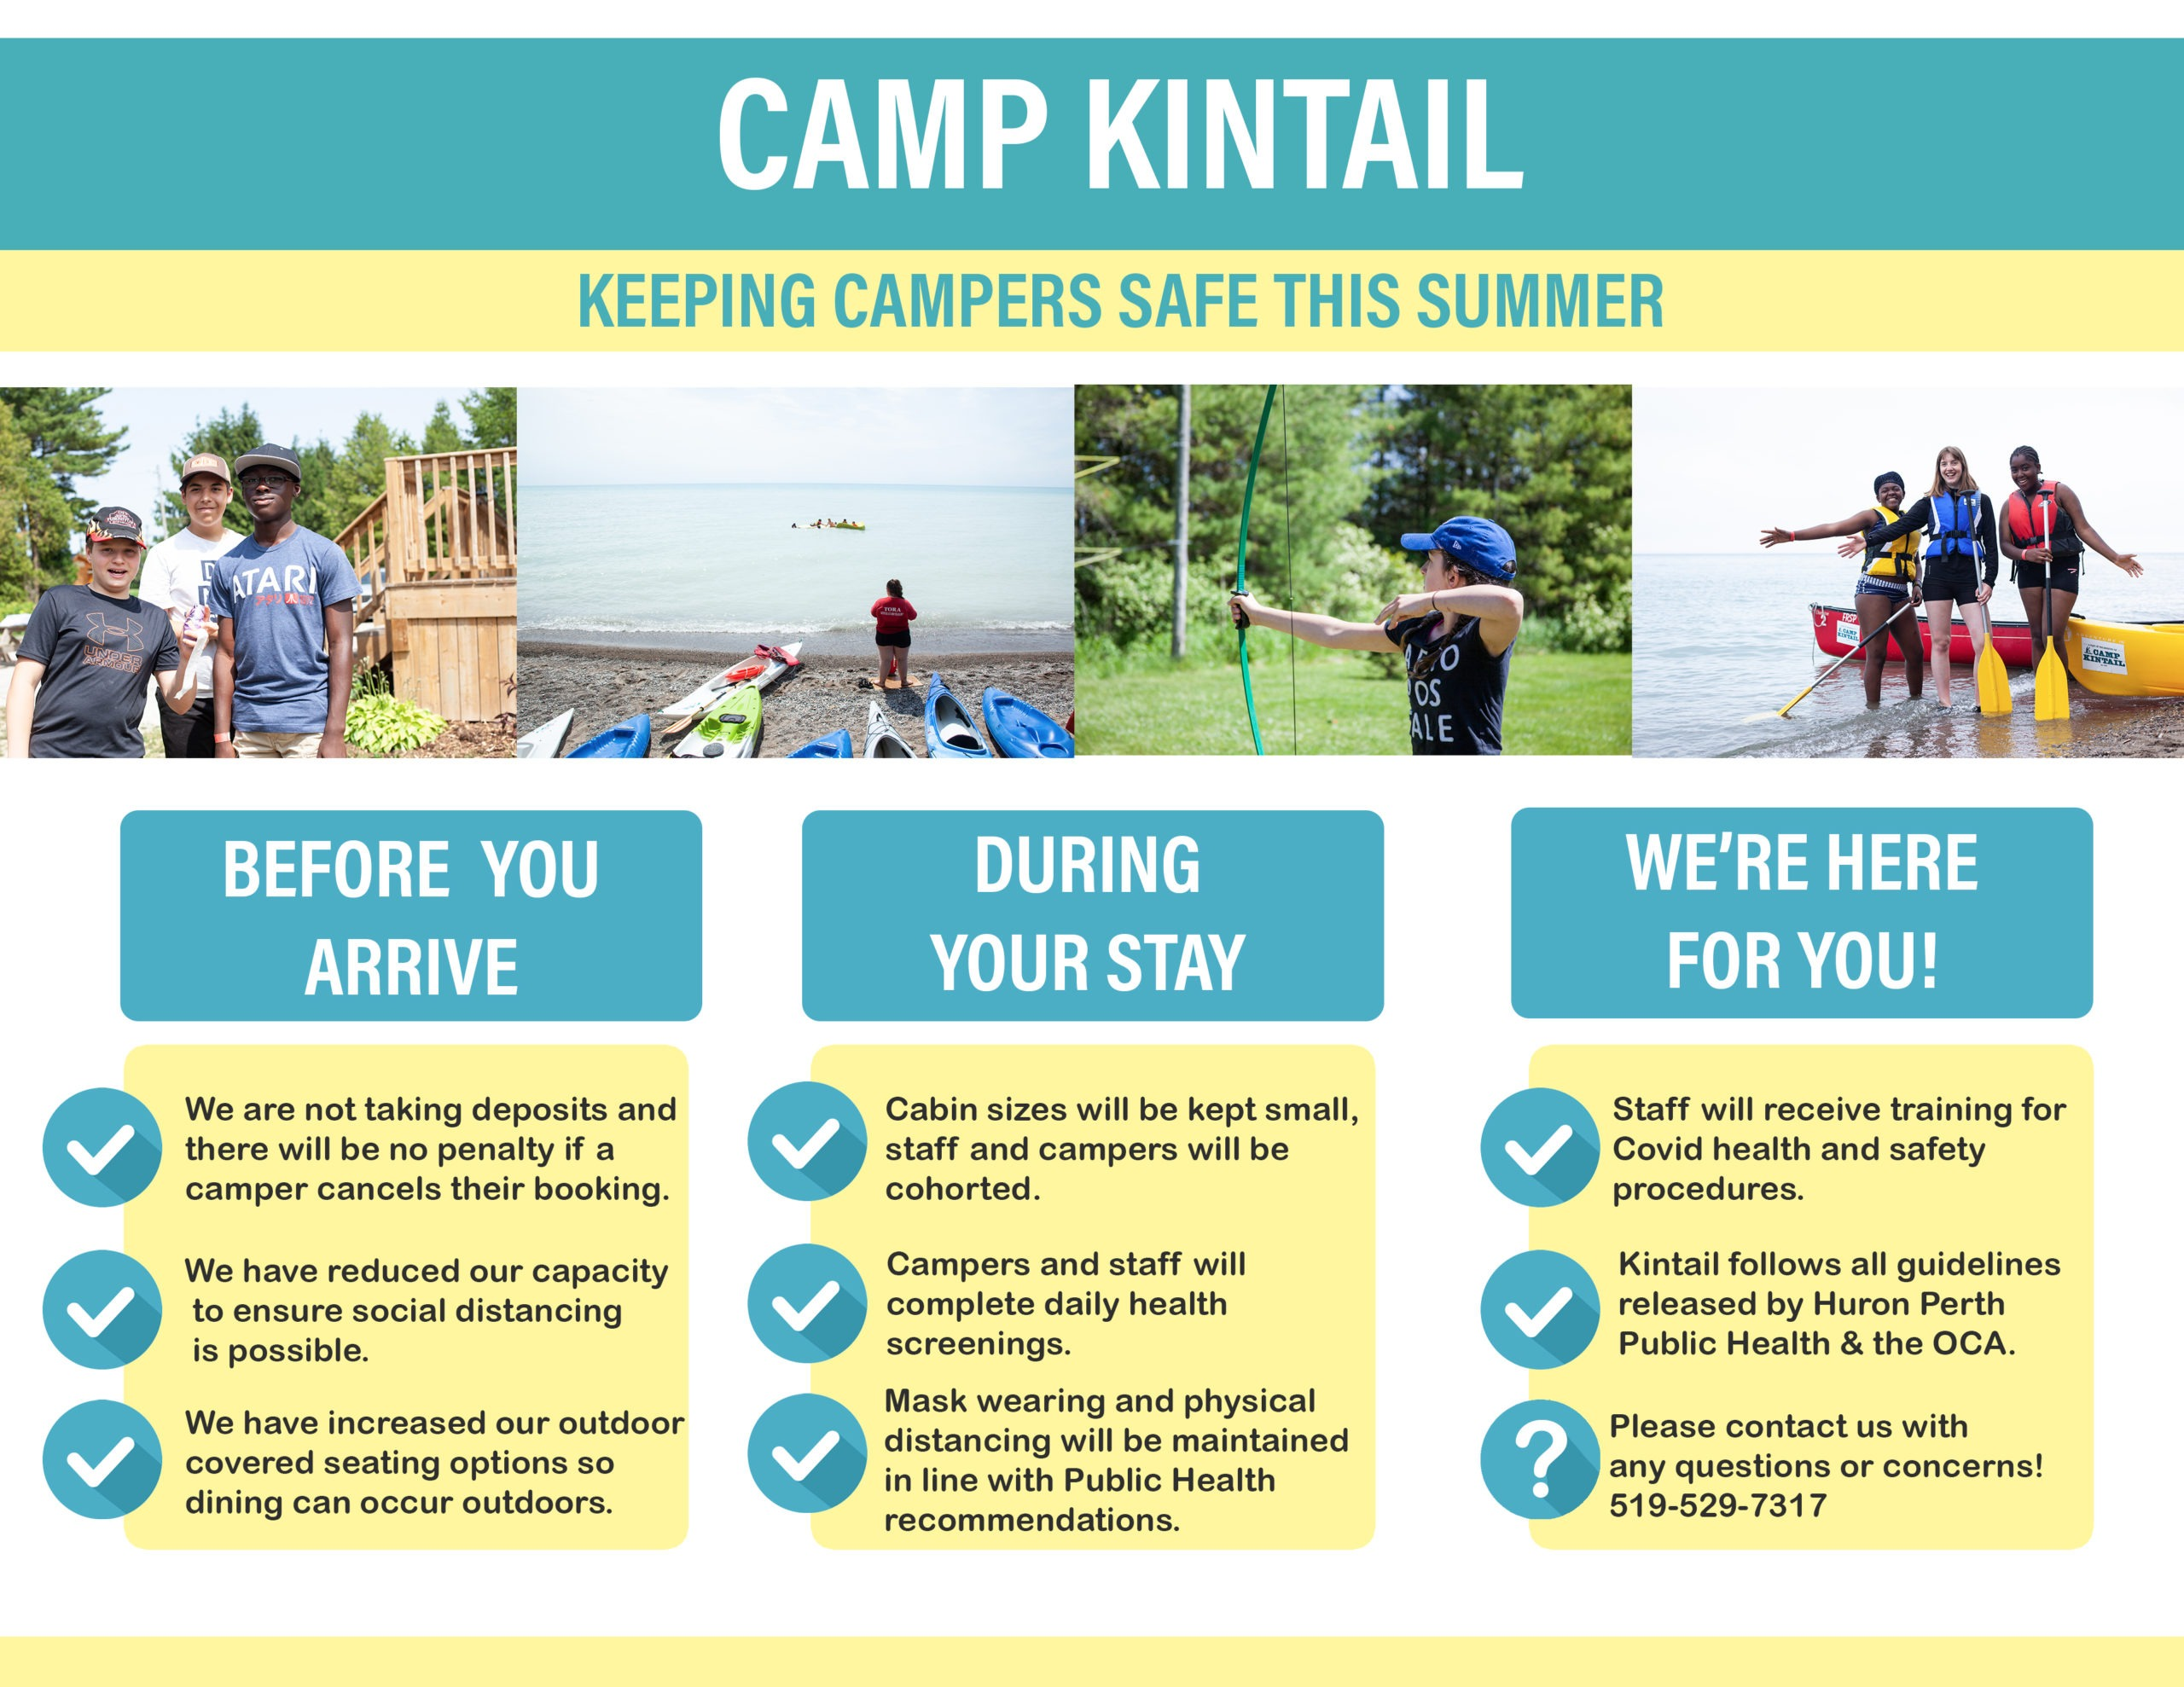 graphic detailing how Camp Kintail will keep campers safe this summer